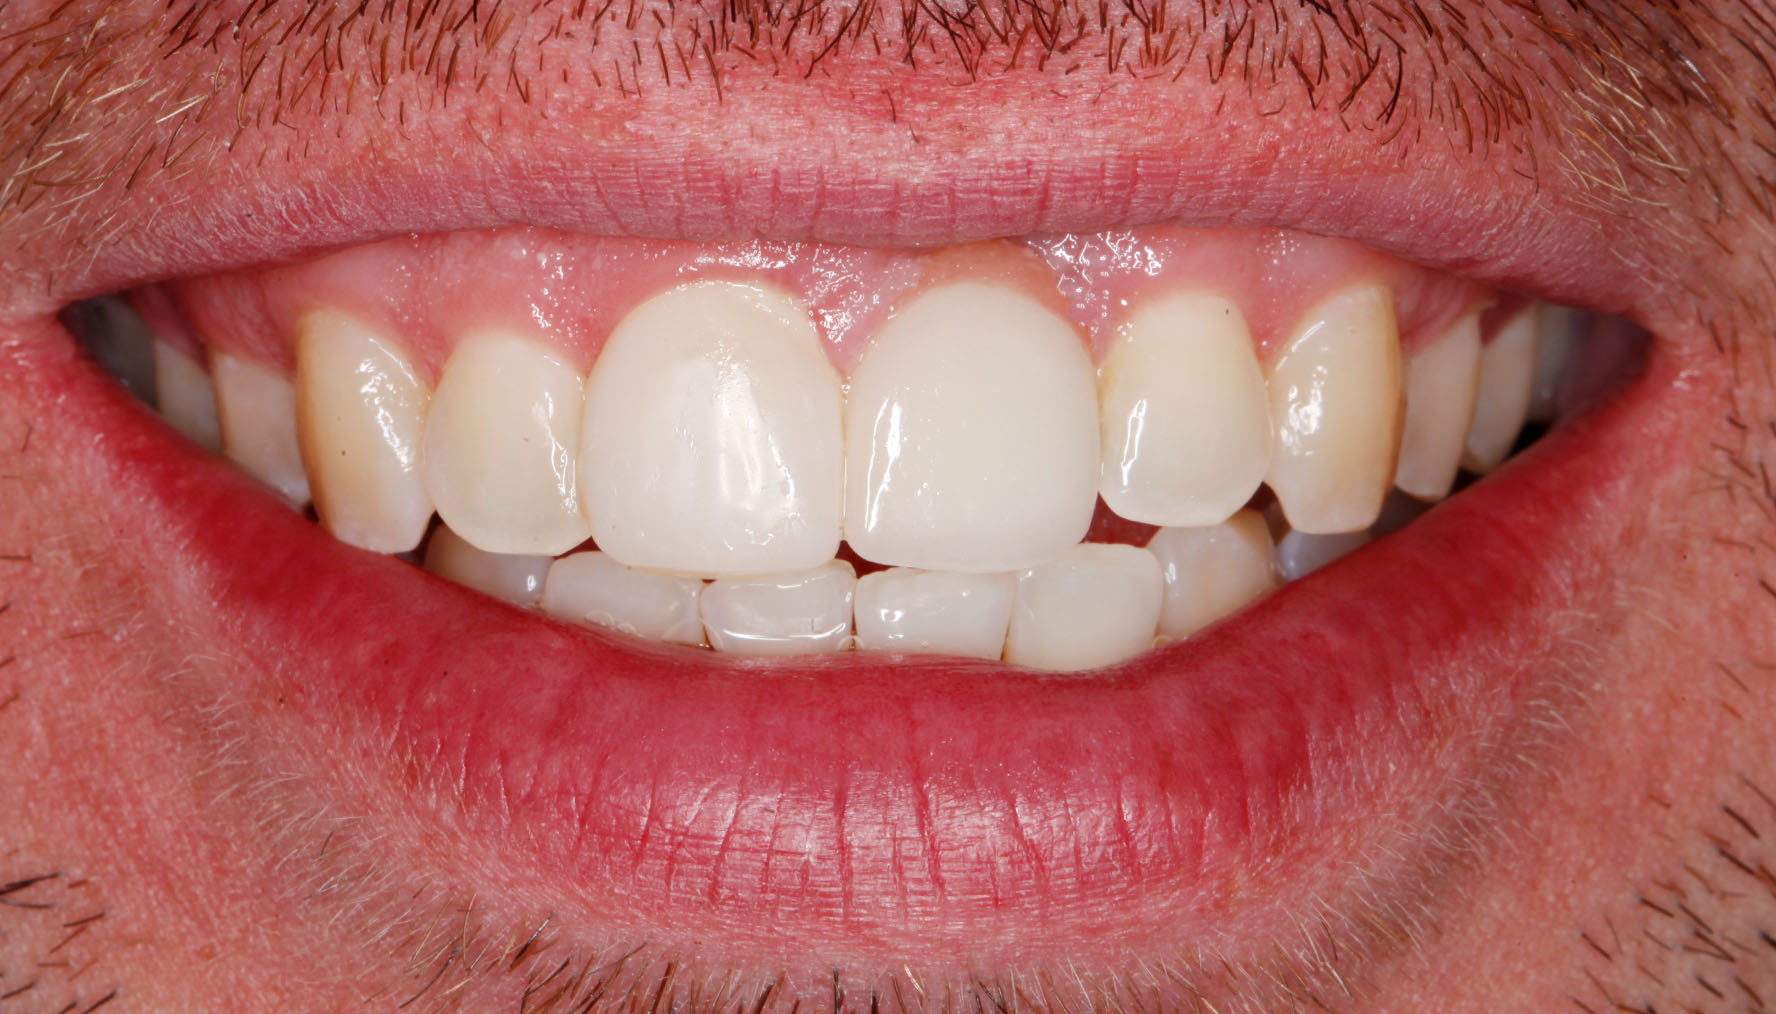 Best cosmetic dentist Greenwood Village Cosmetic Dental Implant Crown After